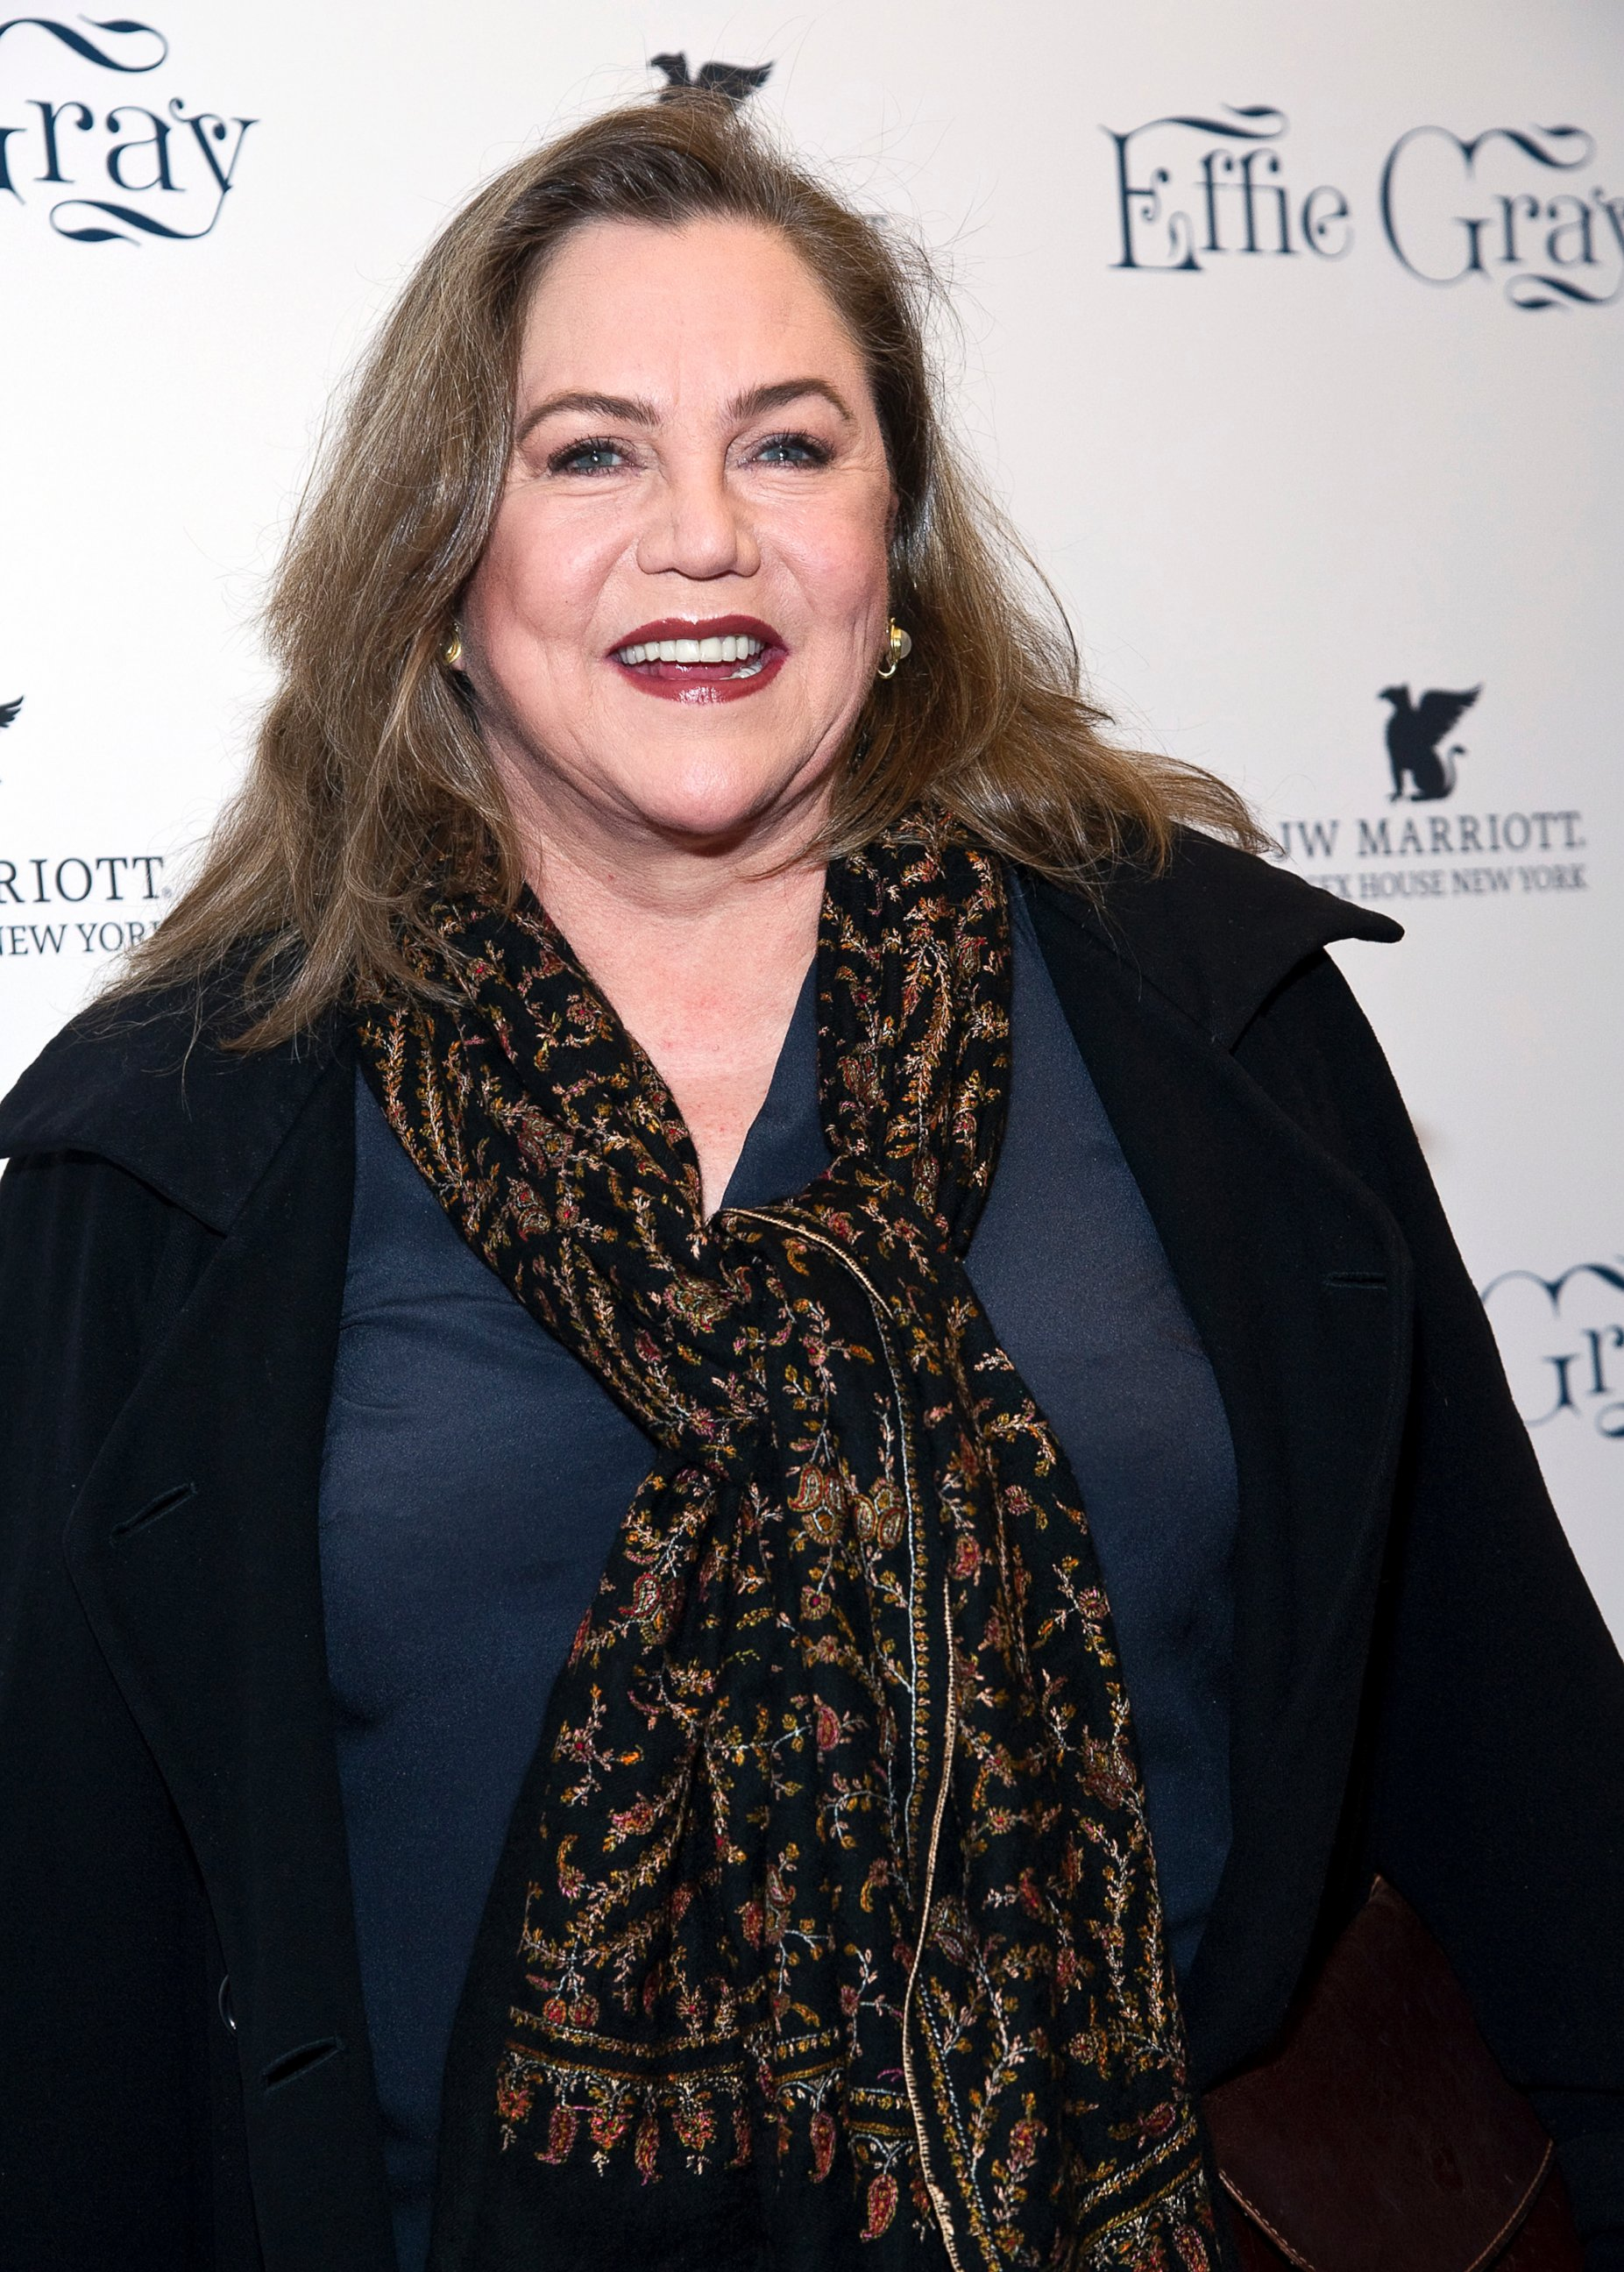 Kathleen Turner Videos at ABC News Video Archive at ...